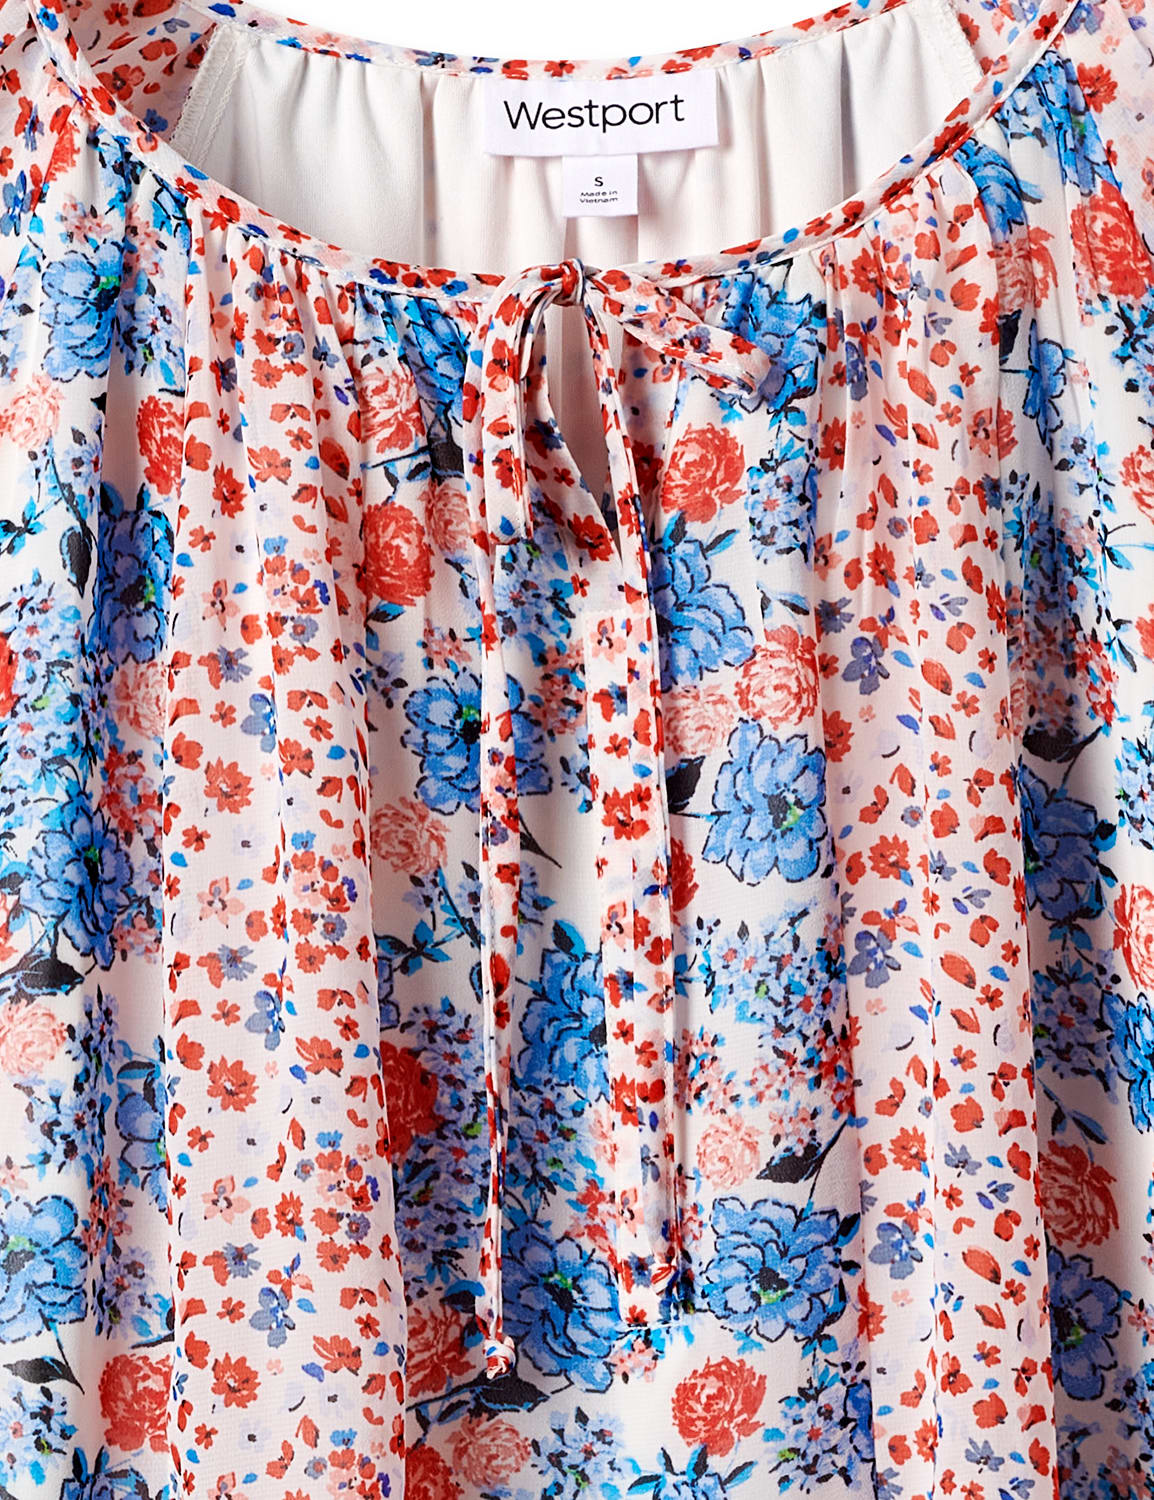 Westport Small Floral Twin Print Blouse - Red/Blue - Front